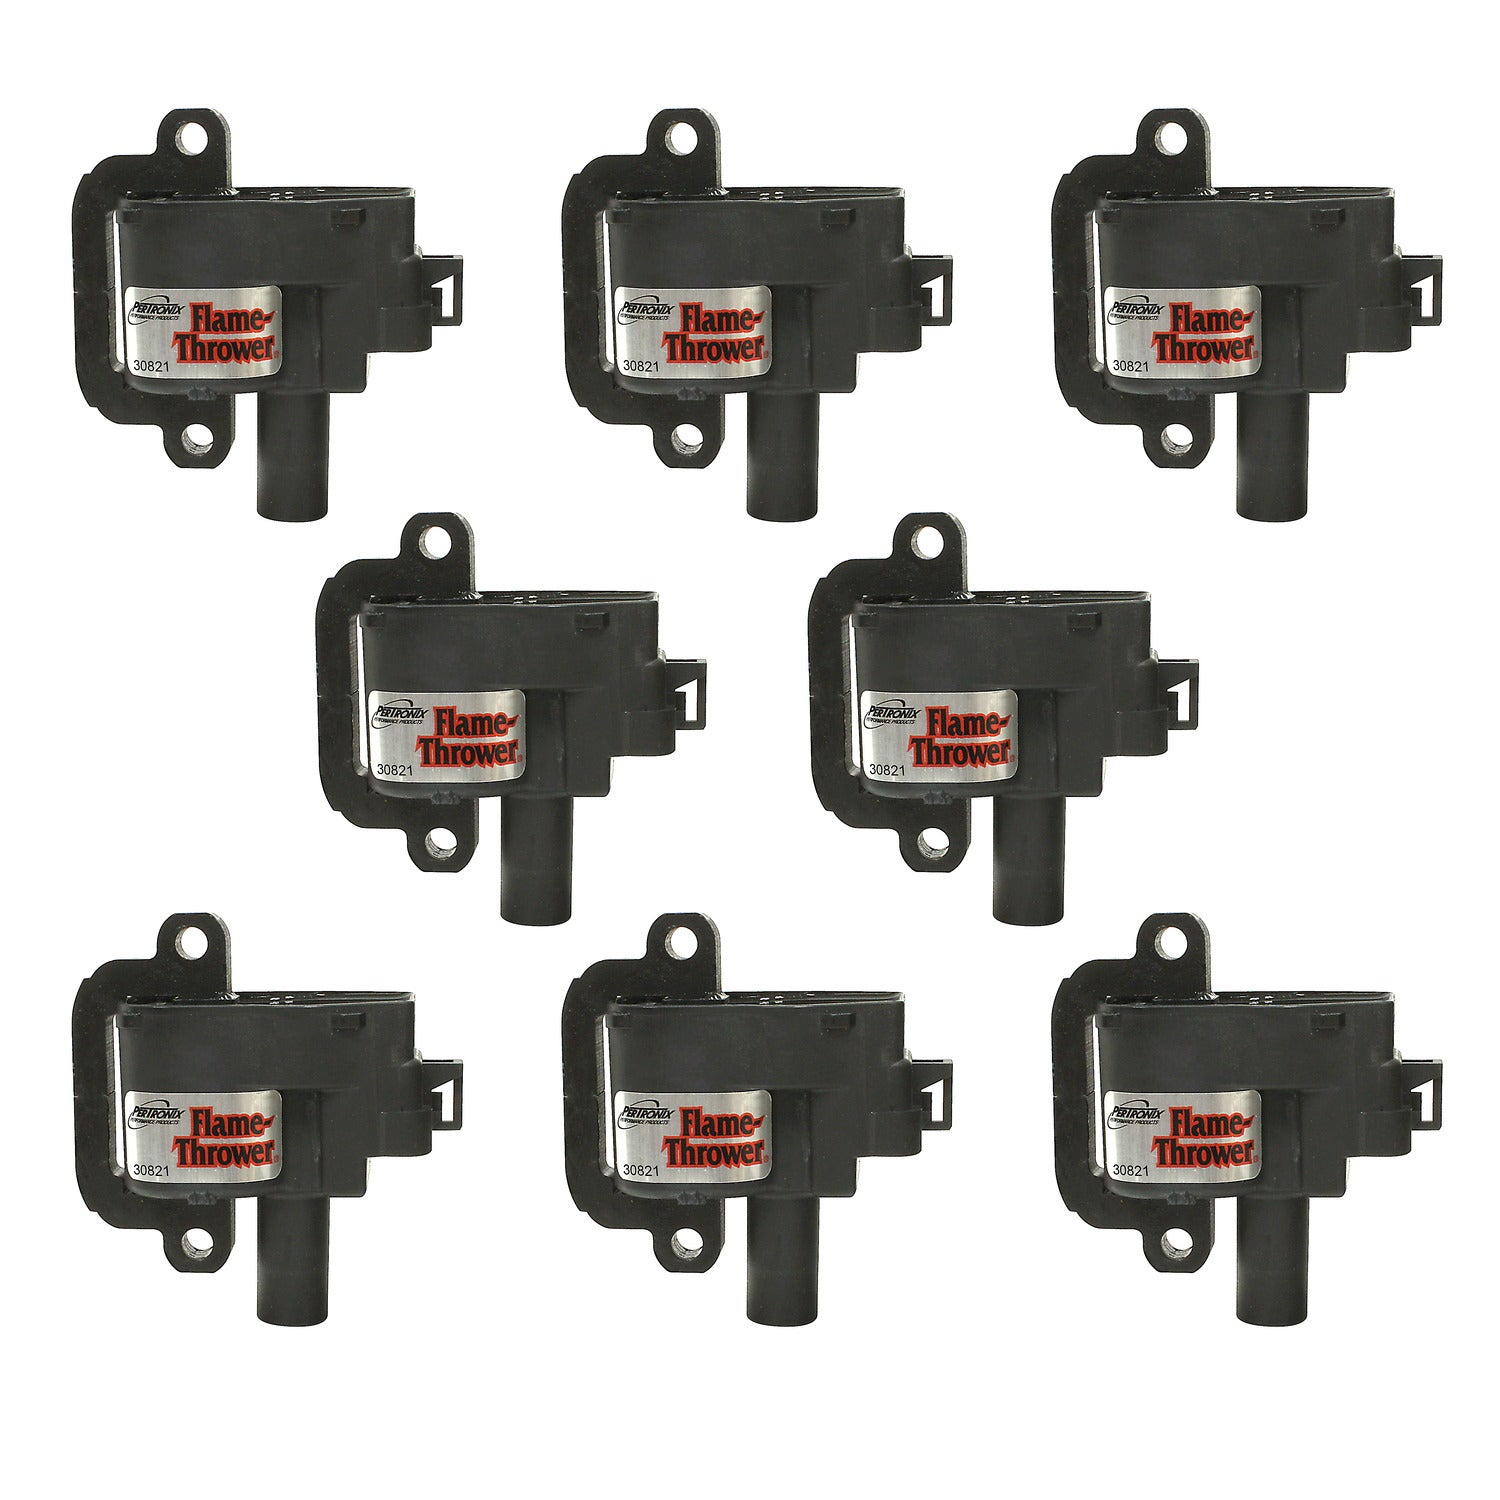 Pertronix 30828 Flame-Thrower Smart Ignition Performance Replacement Coil GM LS1/LS6 Engines set of 8